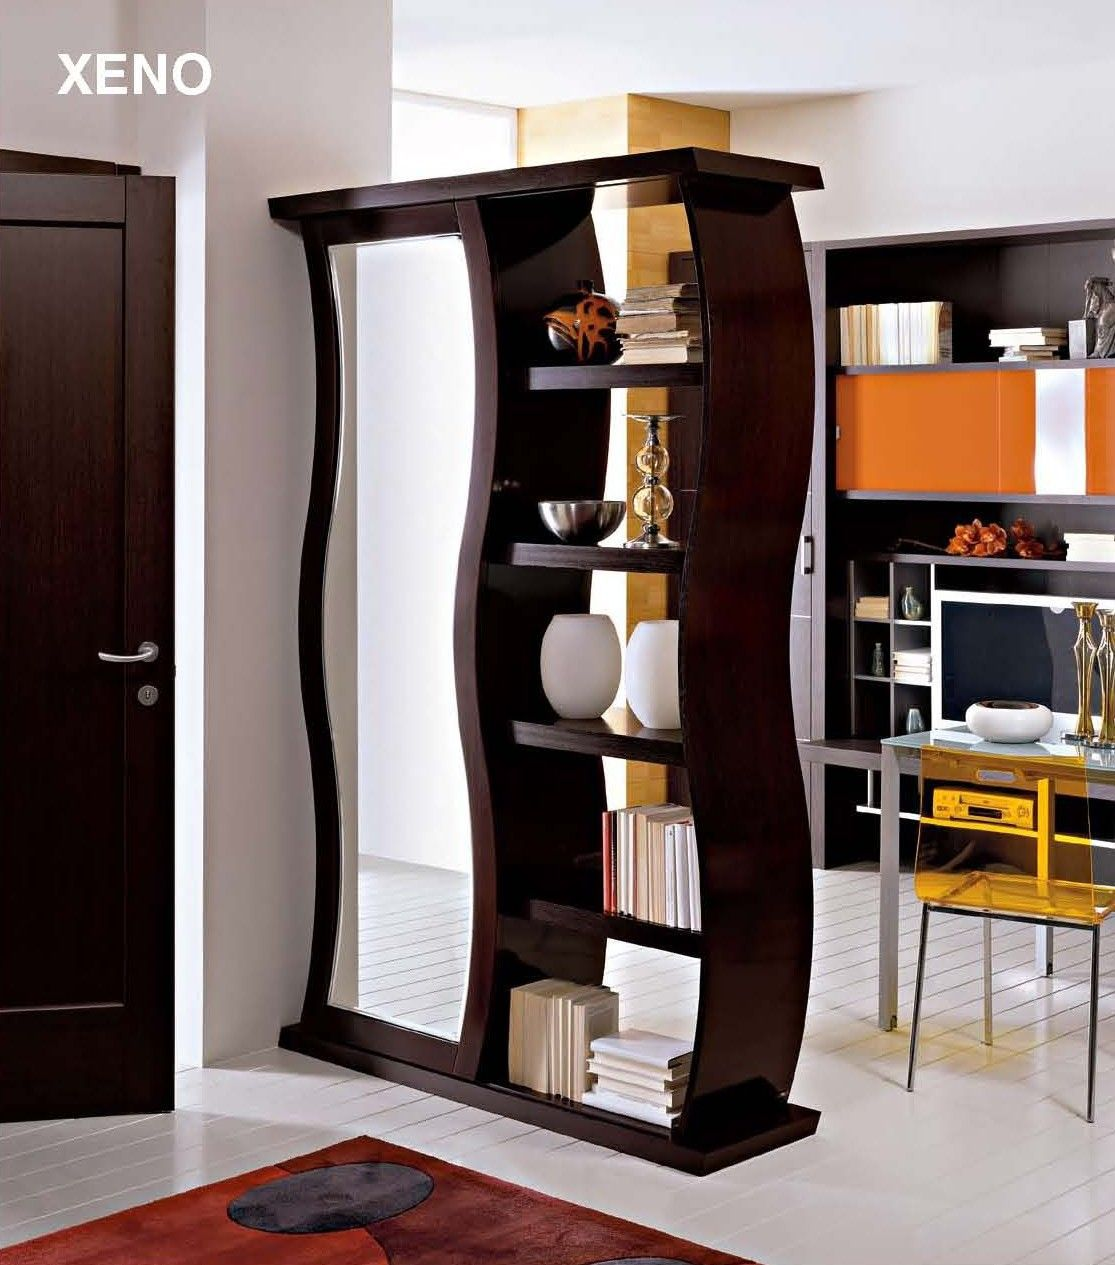 Room Divider Cabinet Designs Google Search Roomdividerrepurpose Modern Room Divider Wooden Room Dividers Room Divider Walls